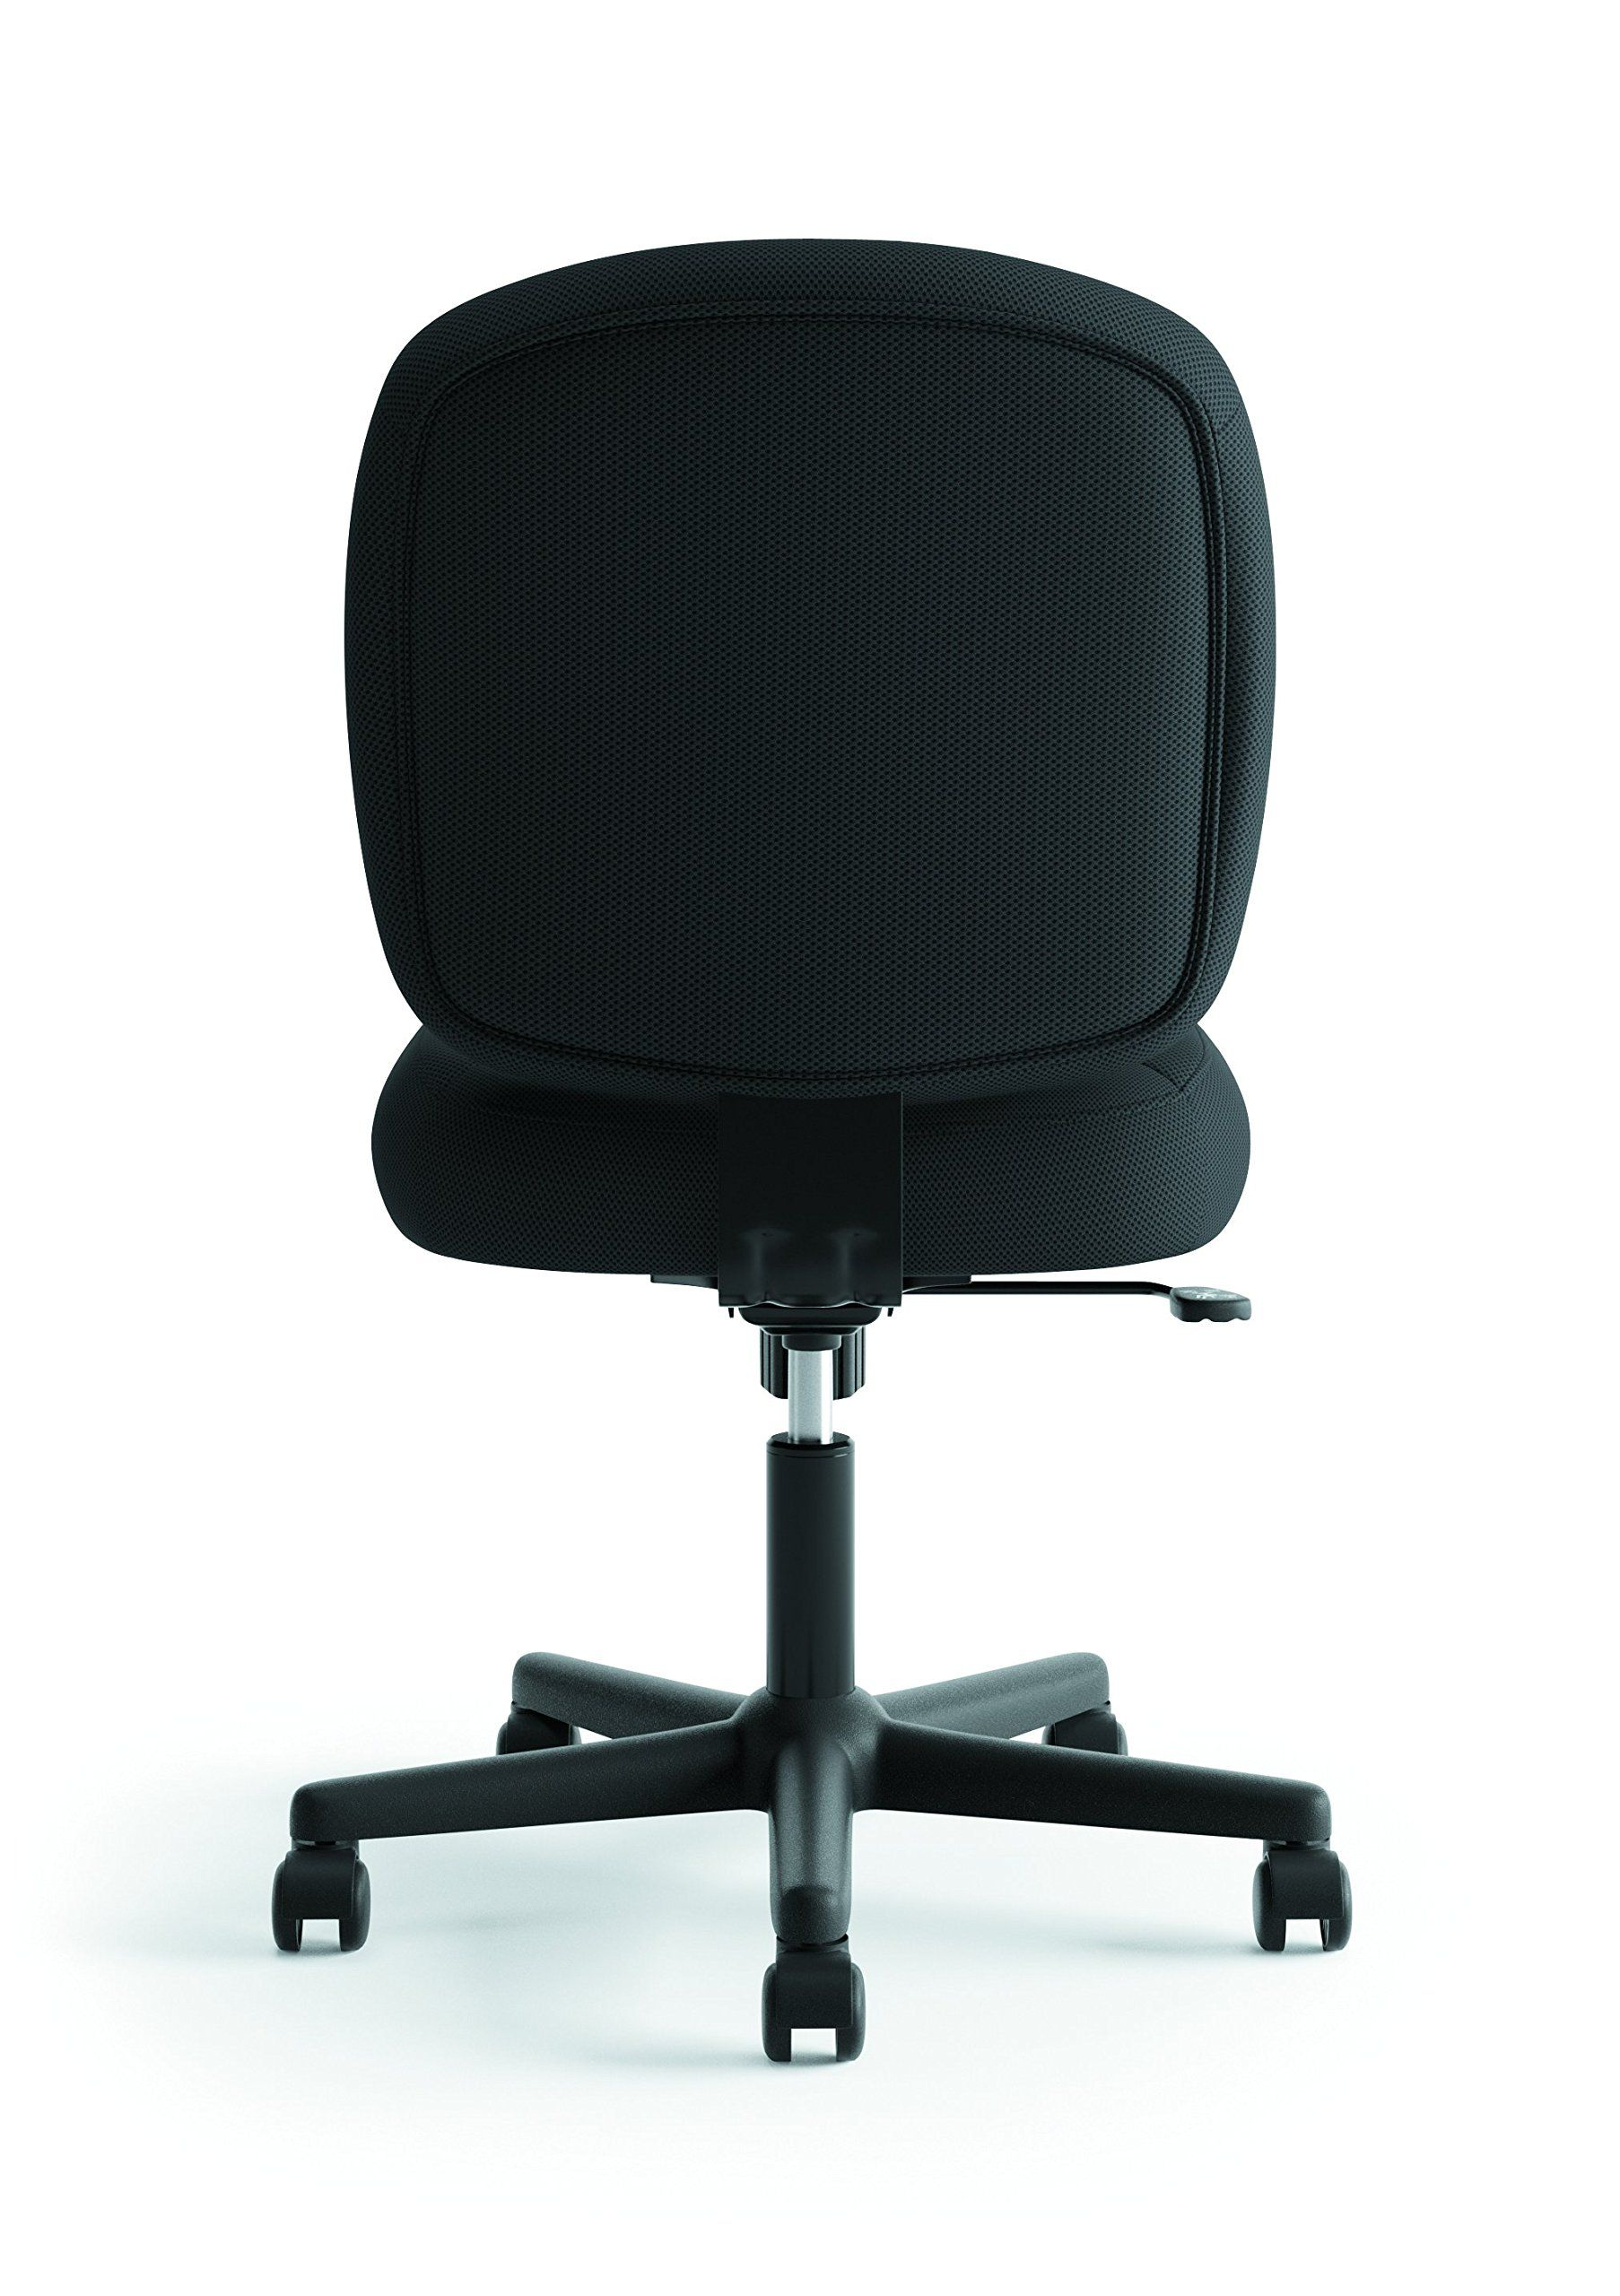 Hon Valutask Low Back Task Chair Mesh Computer Chair For Office Desk Black Hvl210 To Vi Modern Home Office Furniture Modern Home Office Mesh Computer Chair